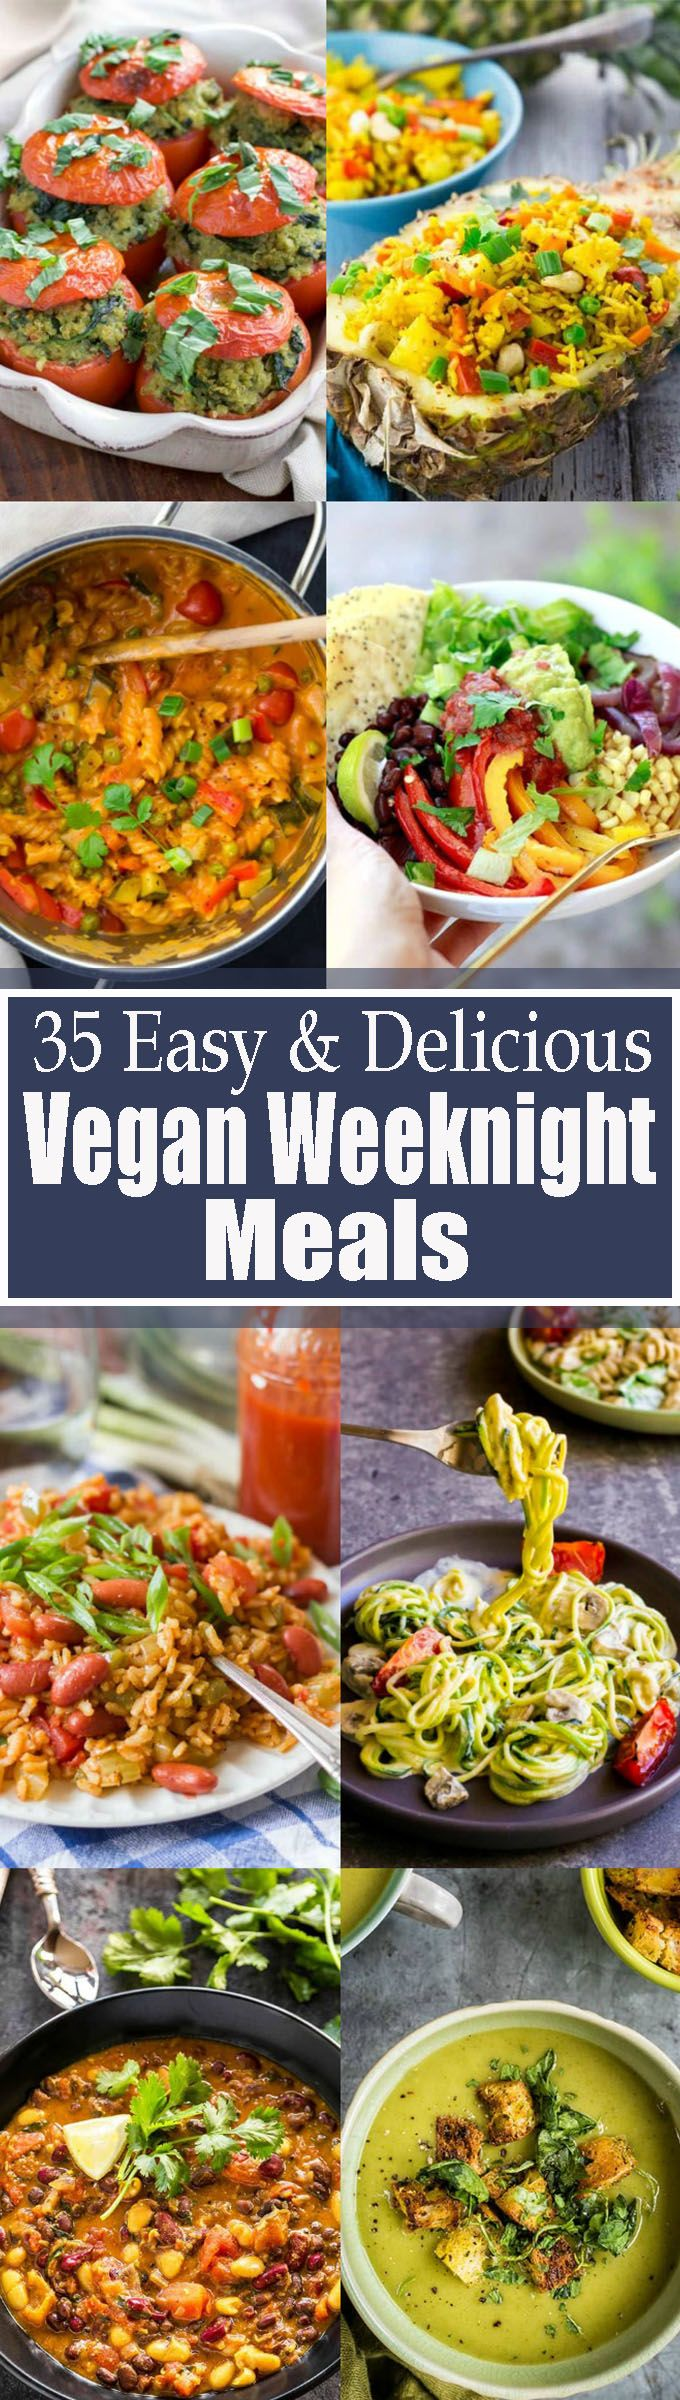 If you're looking for quick and easy vegan dinner recipes, this roundup of 35 easy vegan weeknight meals will be perfect for you! It includes vegan pasta, vegan curries, vegan one pot meals, vegan soups and sooo much more! <3